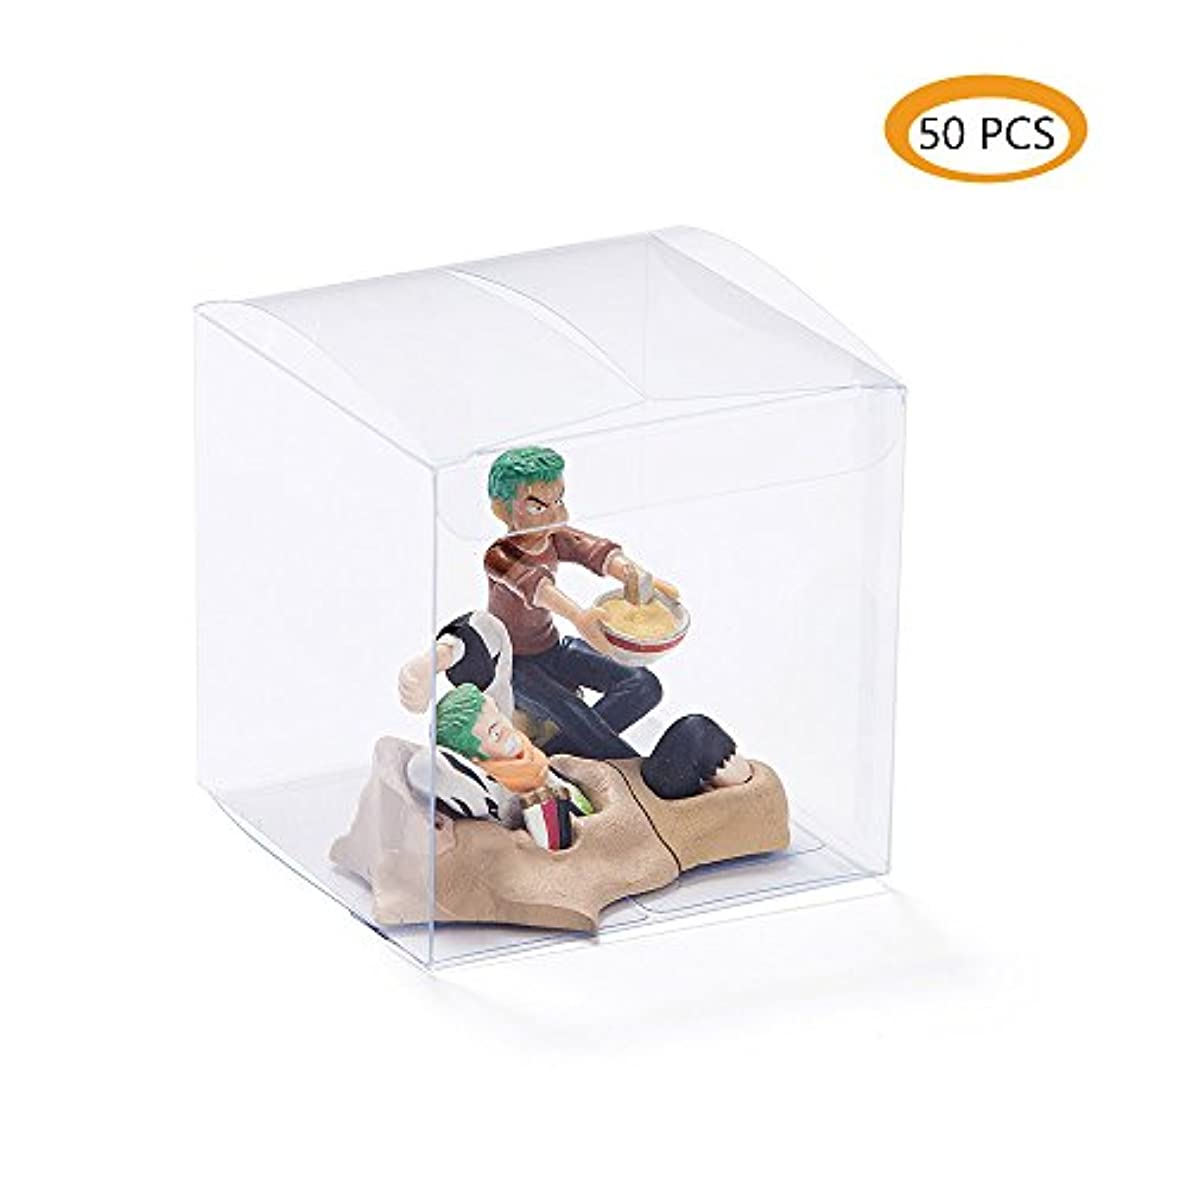 ZOOYOO Clear Plastic Box 3x3x3inch for Weddings/Party Favors/Packaging Treat Cupcake Transparent Packing Boxes 50PCS